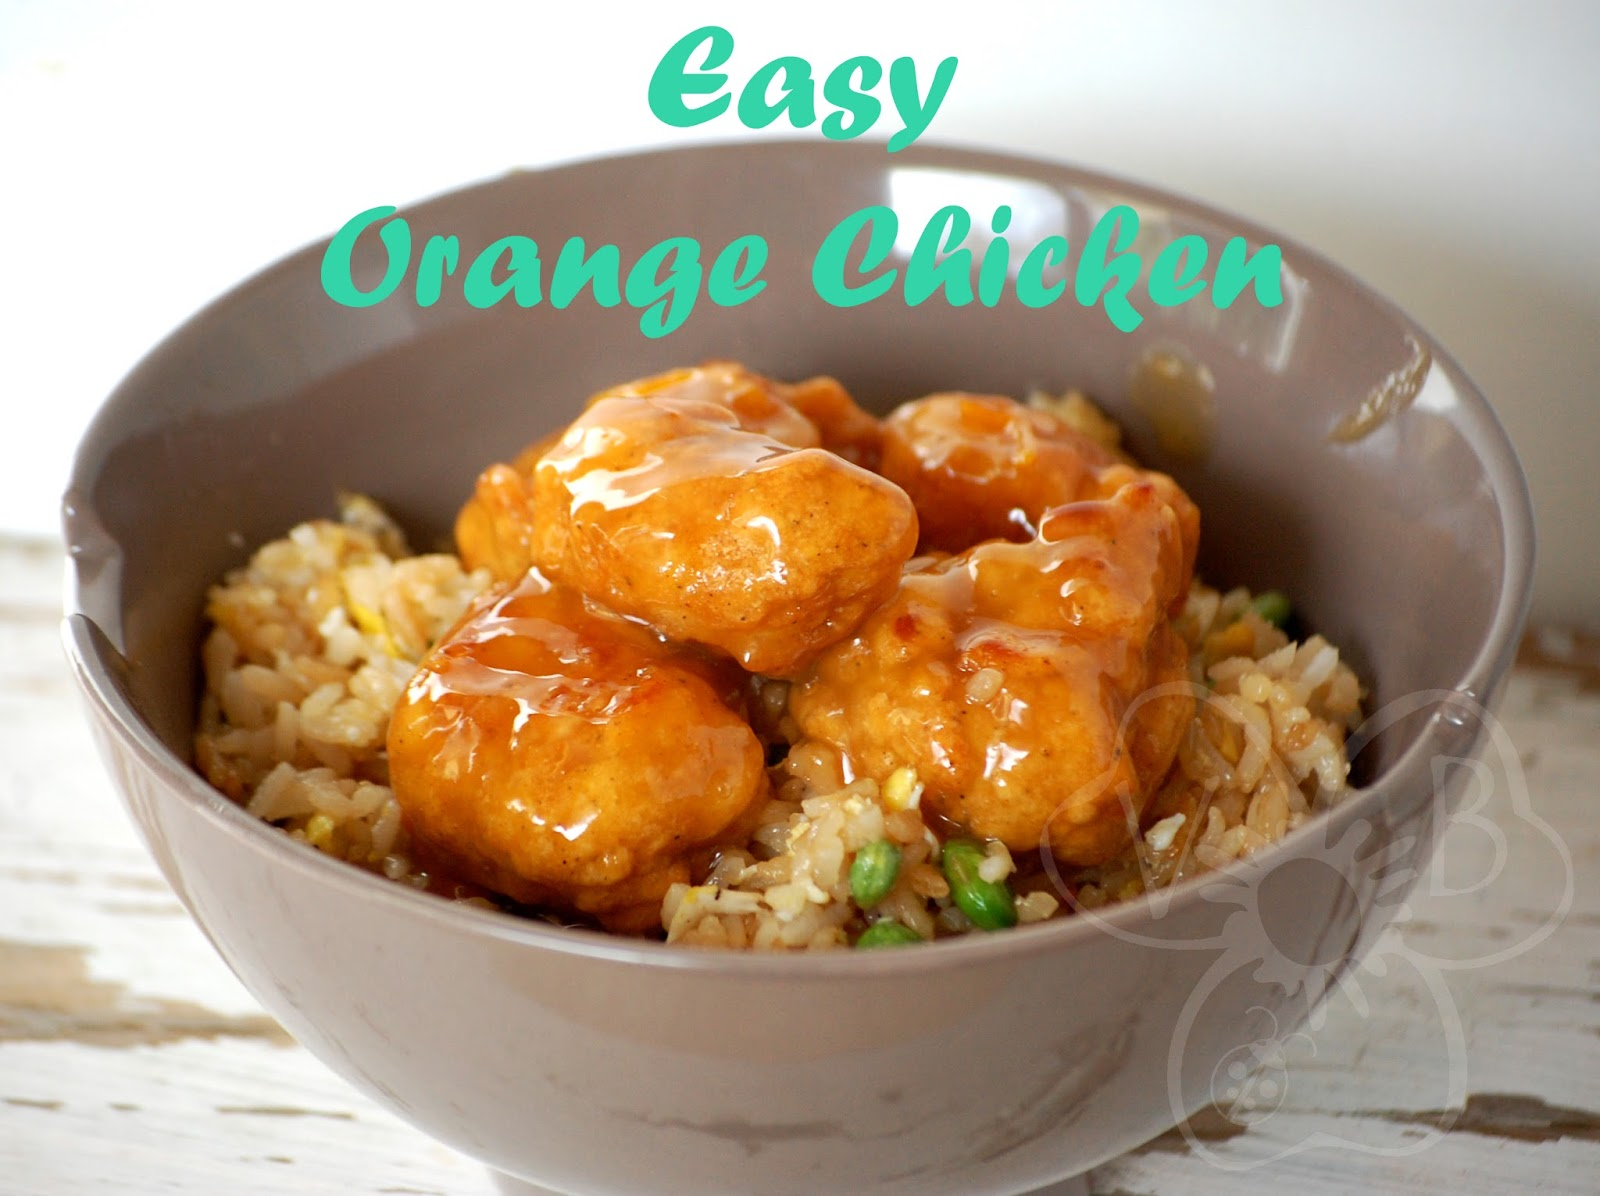 easy meal recipes